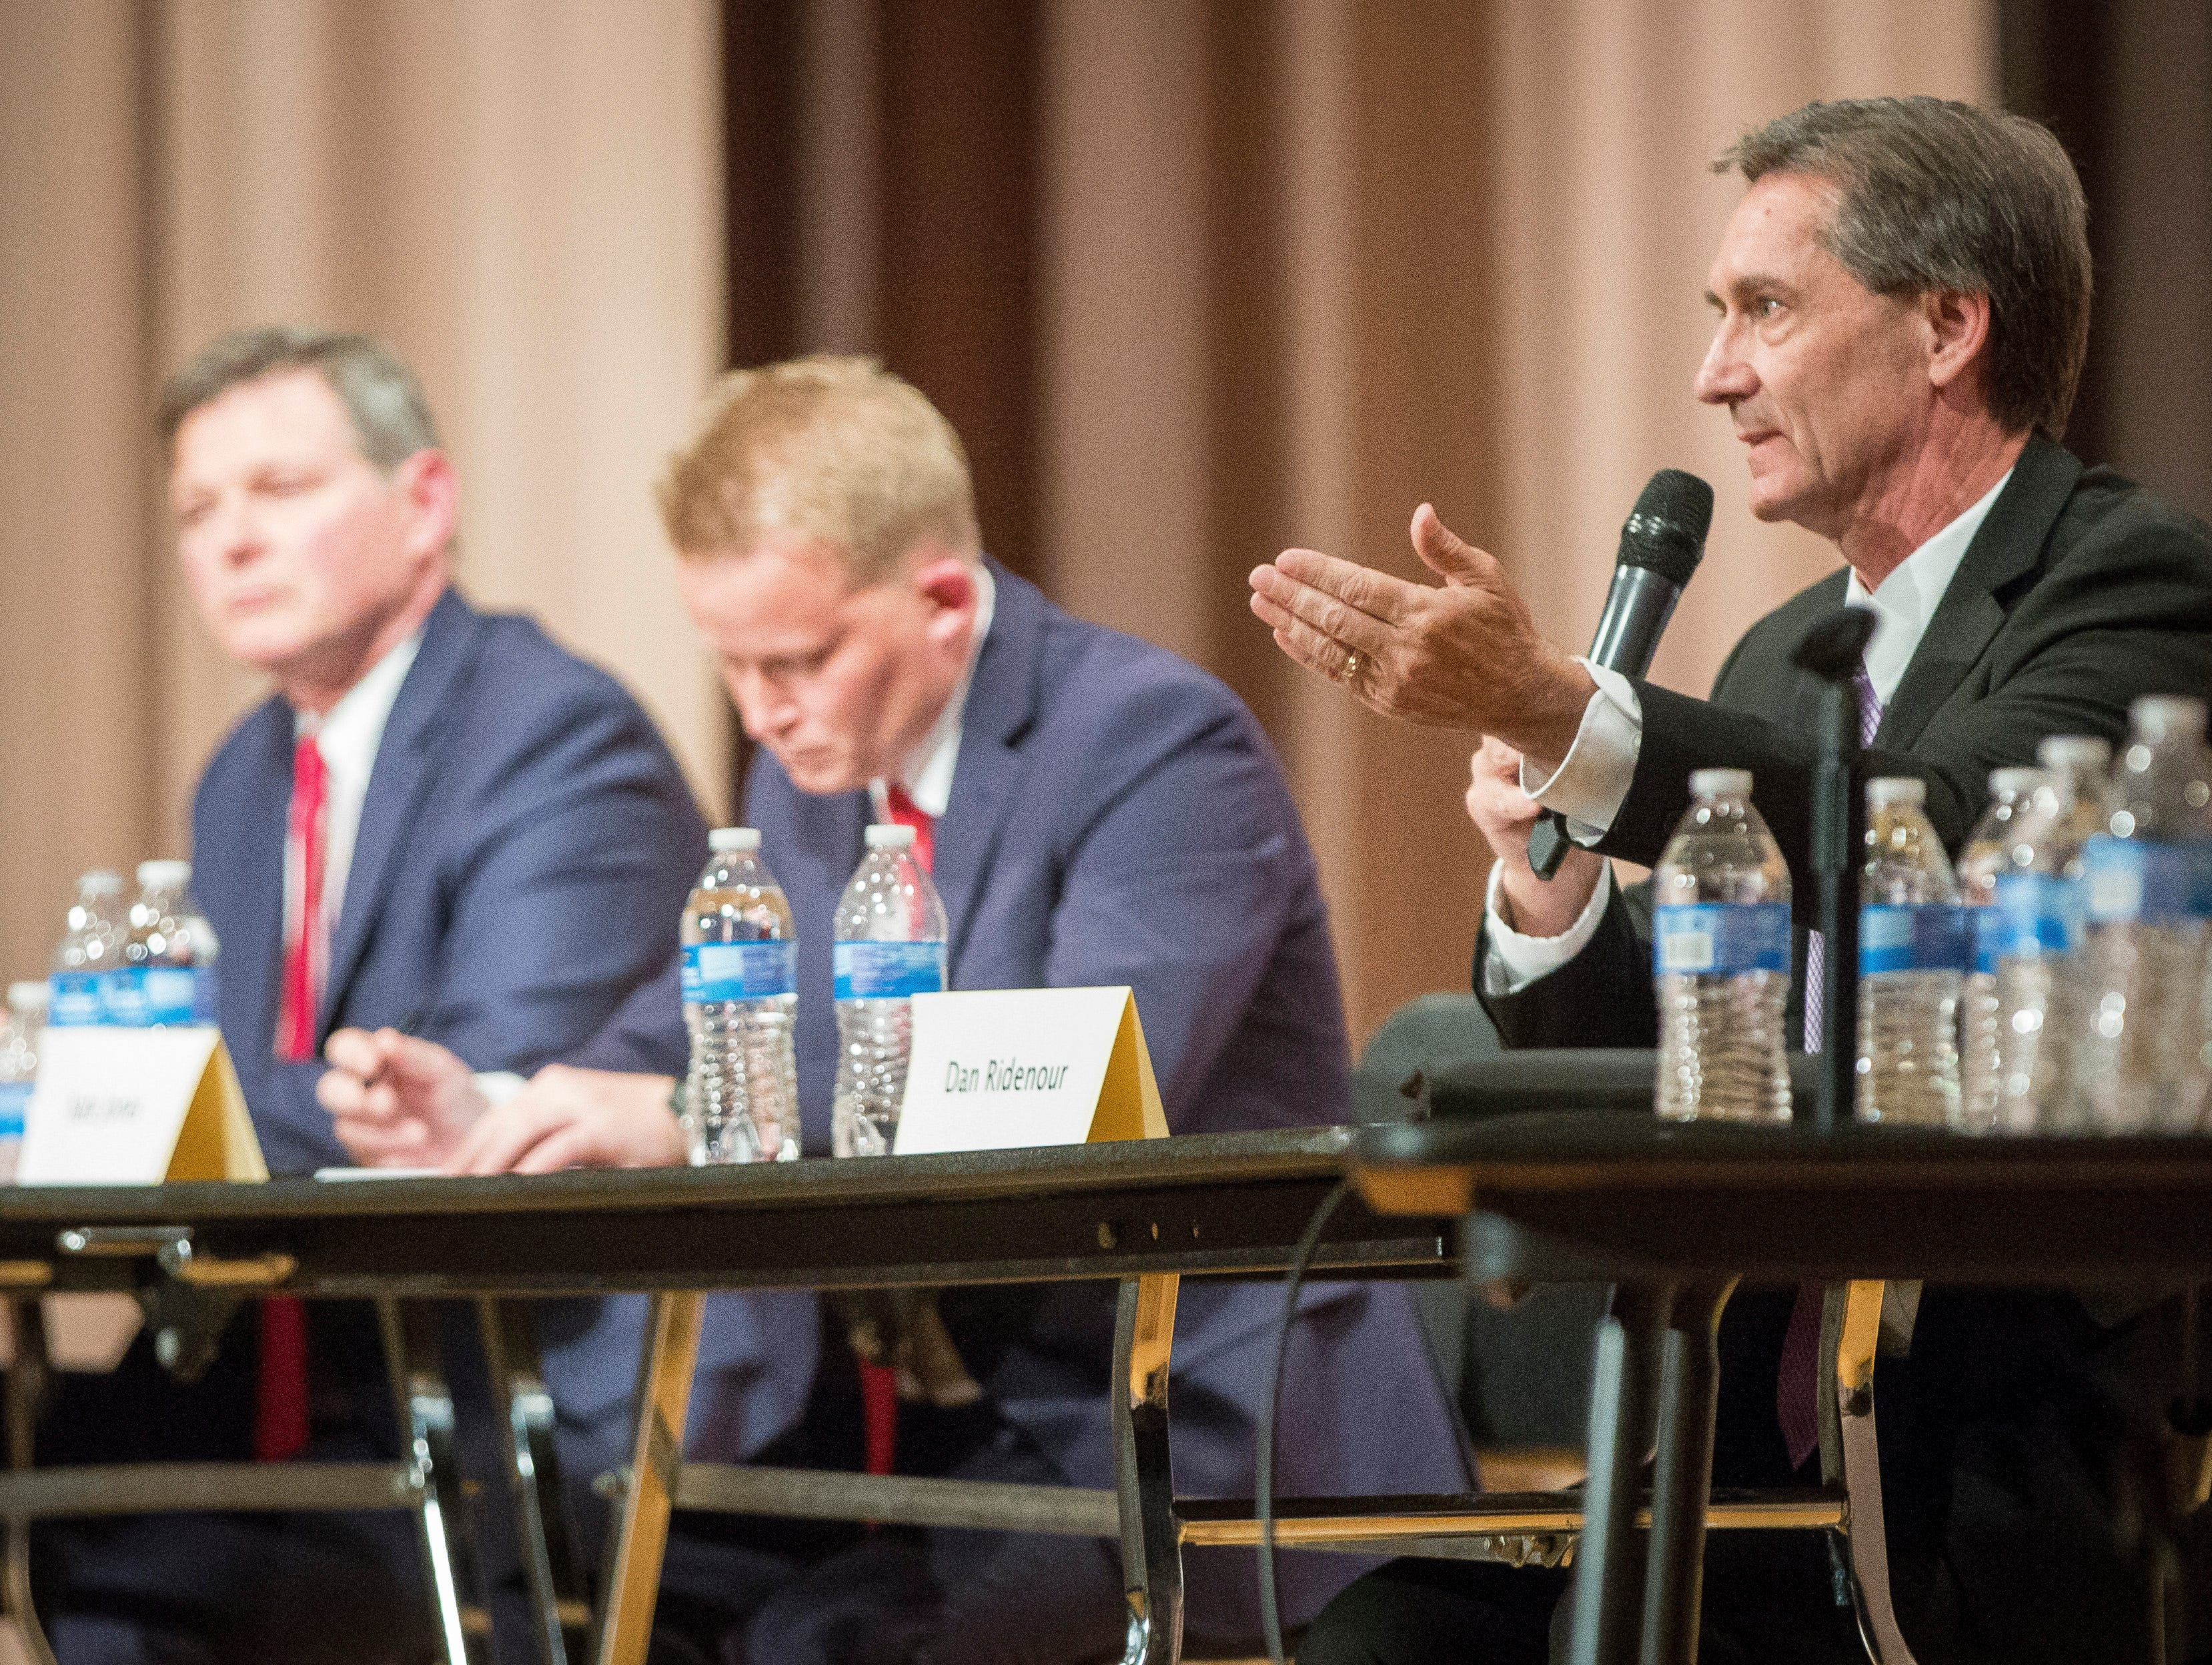 Dan Ridenour answers a question from the moderators during the Republican mayoral debate on April 23 at Northside Middle School. The primary is on May 7.